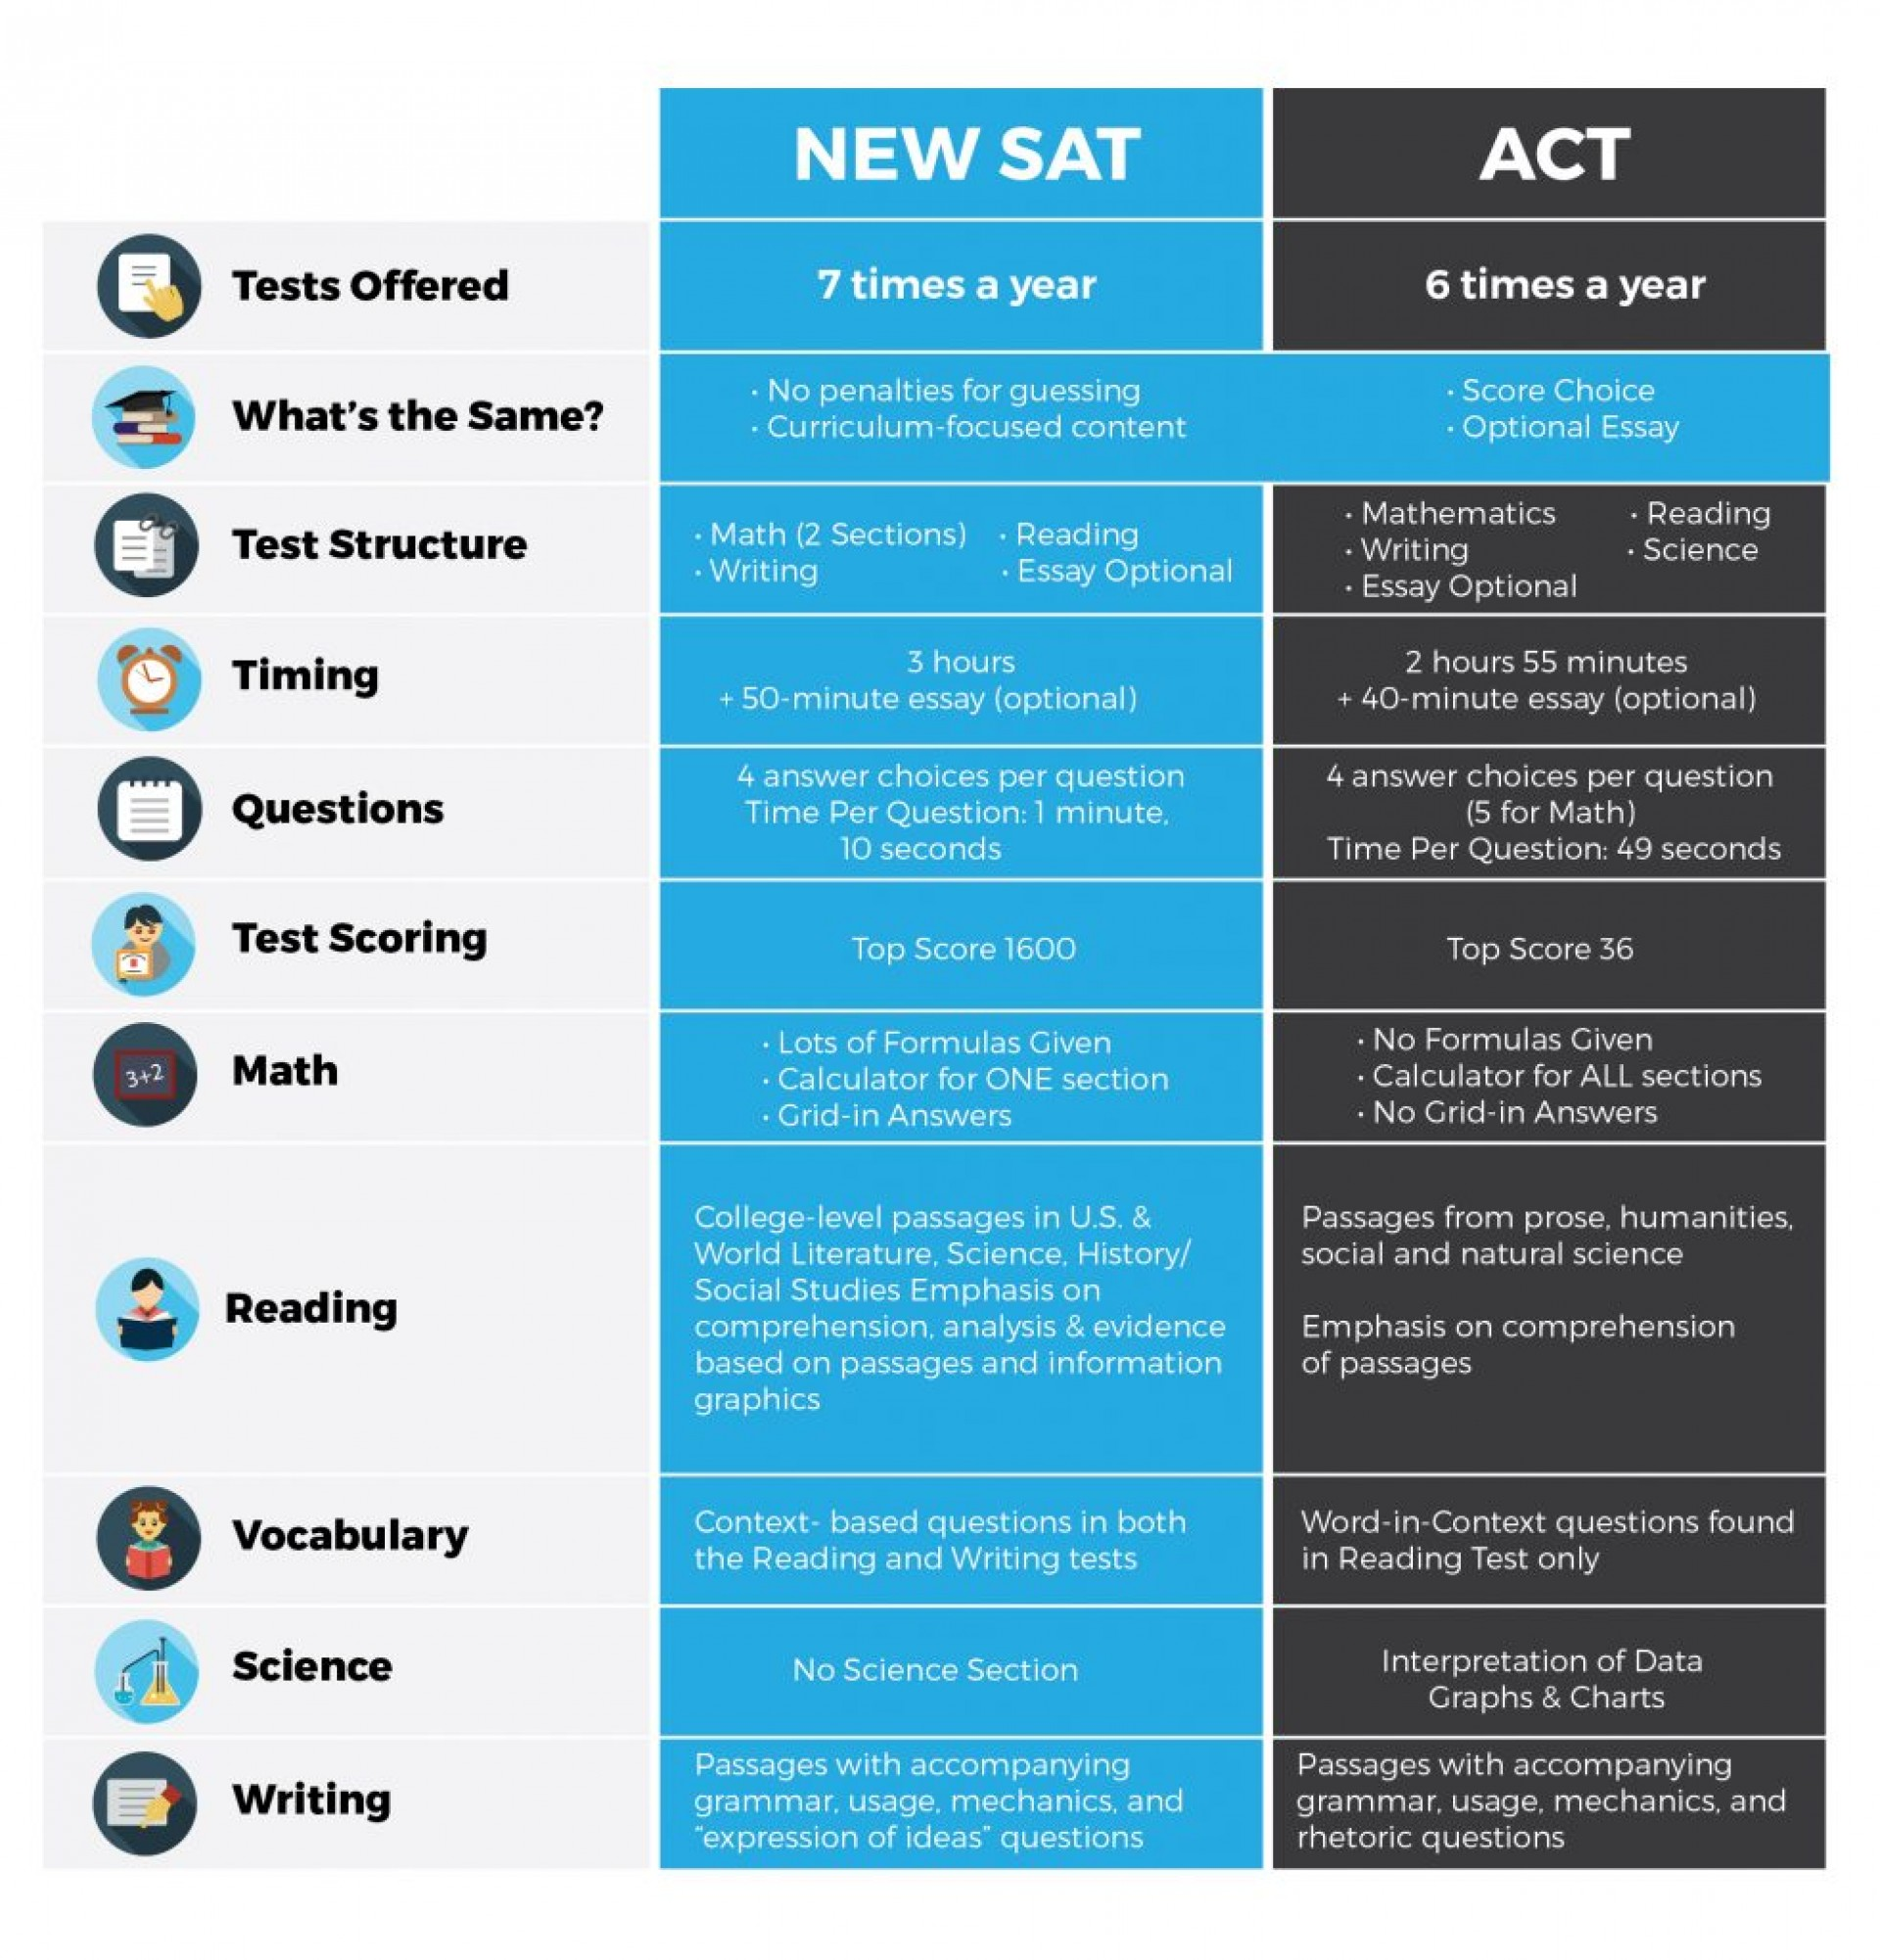 004 New Sat Vs Act 982x1024 Essay Example Colleges That Fascinating Require Don't Essays For Admission 2019 College Board 1920